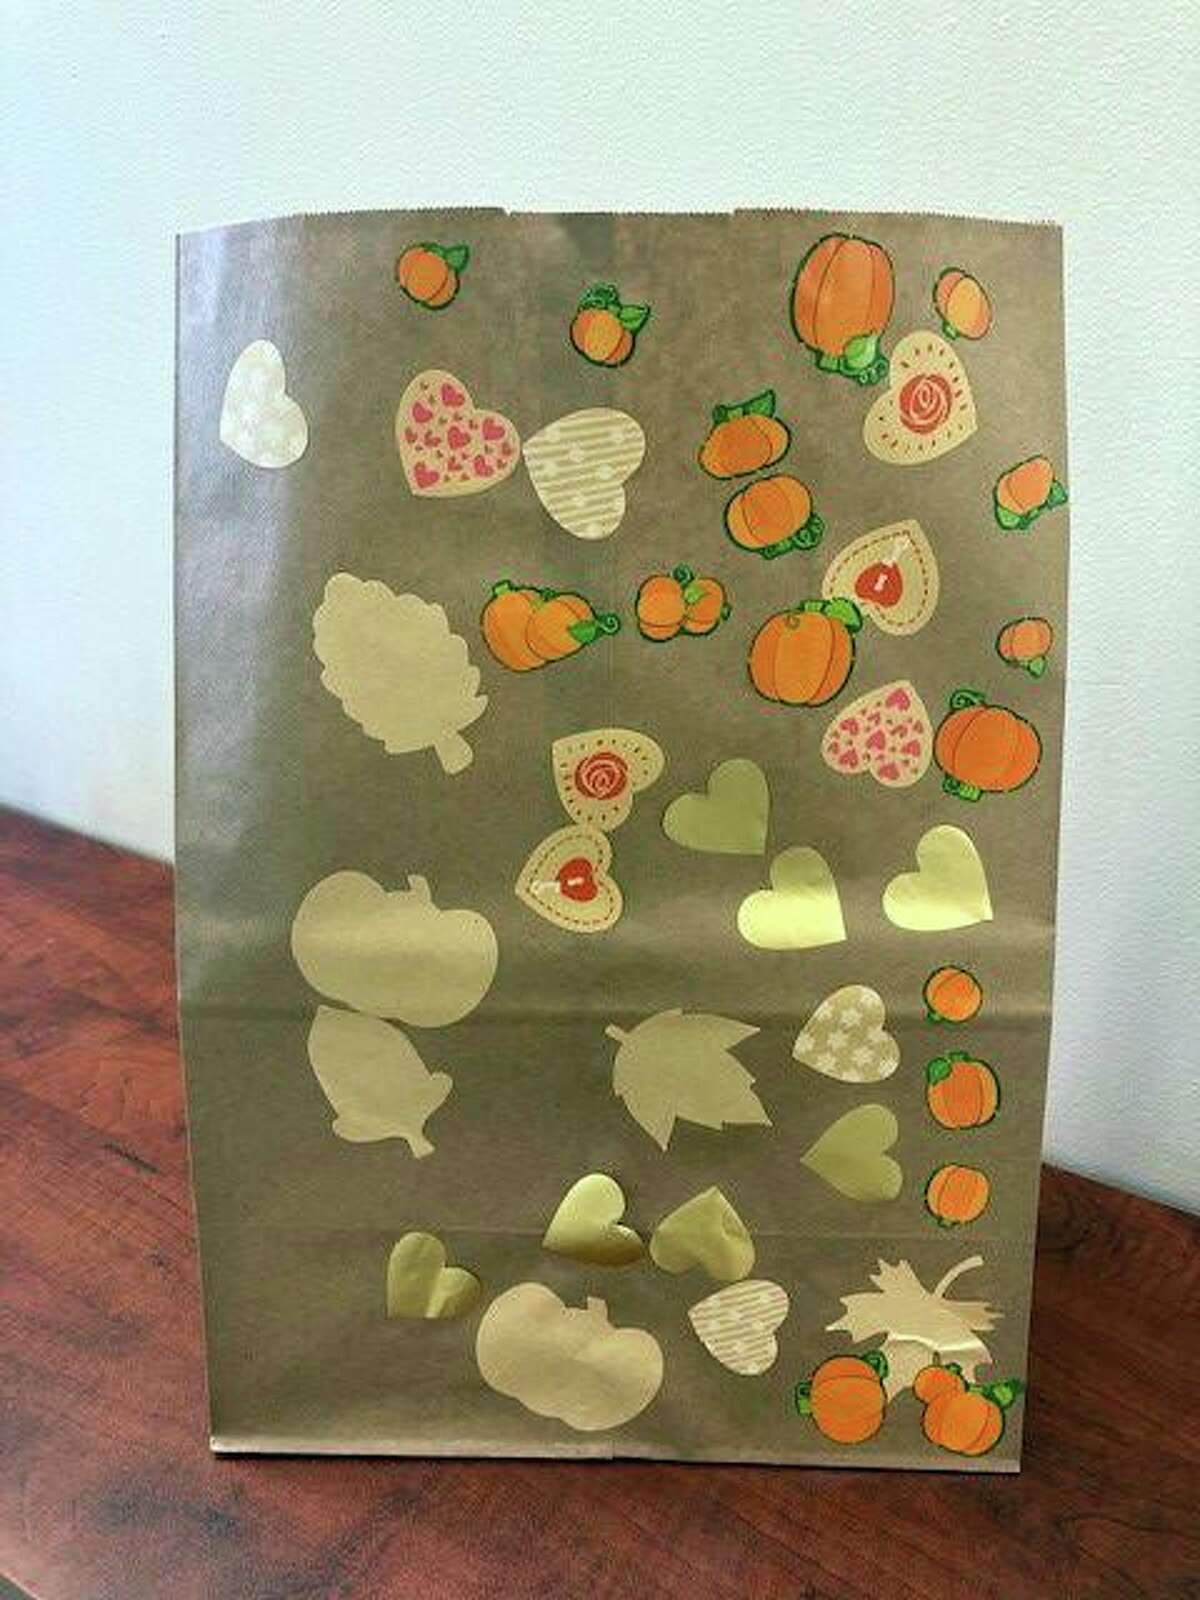 One of the bags made by the children at Temple Israel that will go alongside delivered meals this Thanksgiving.